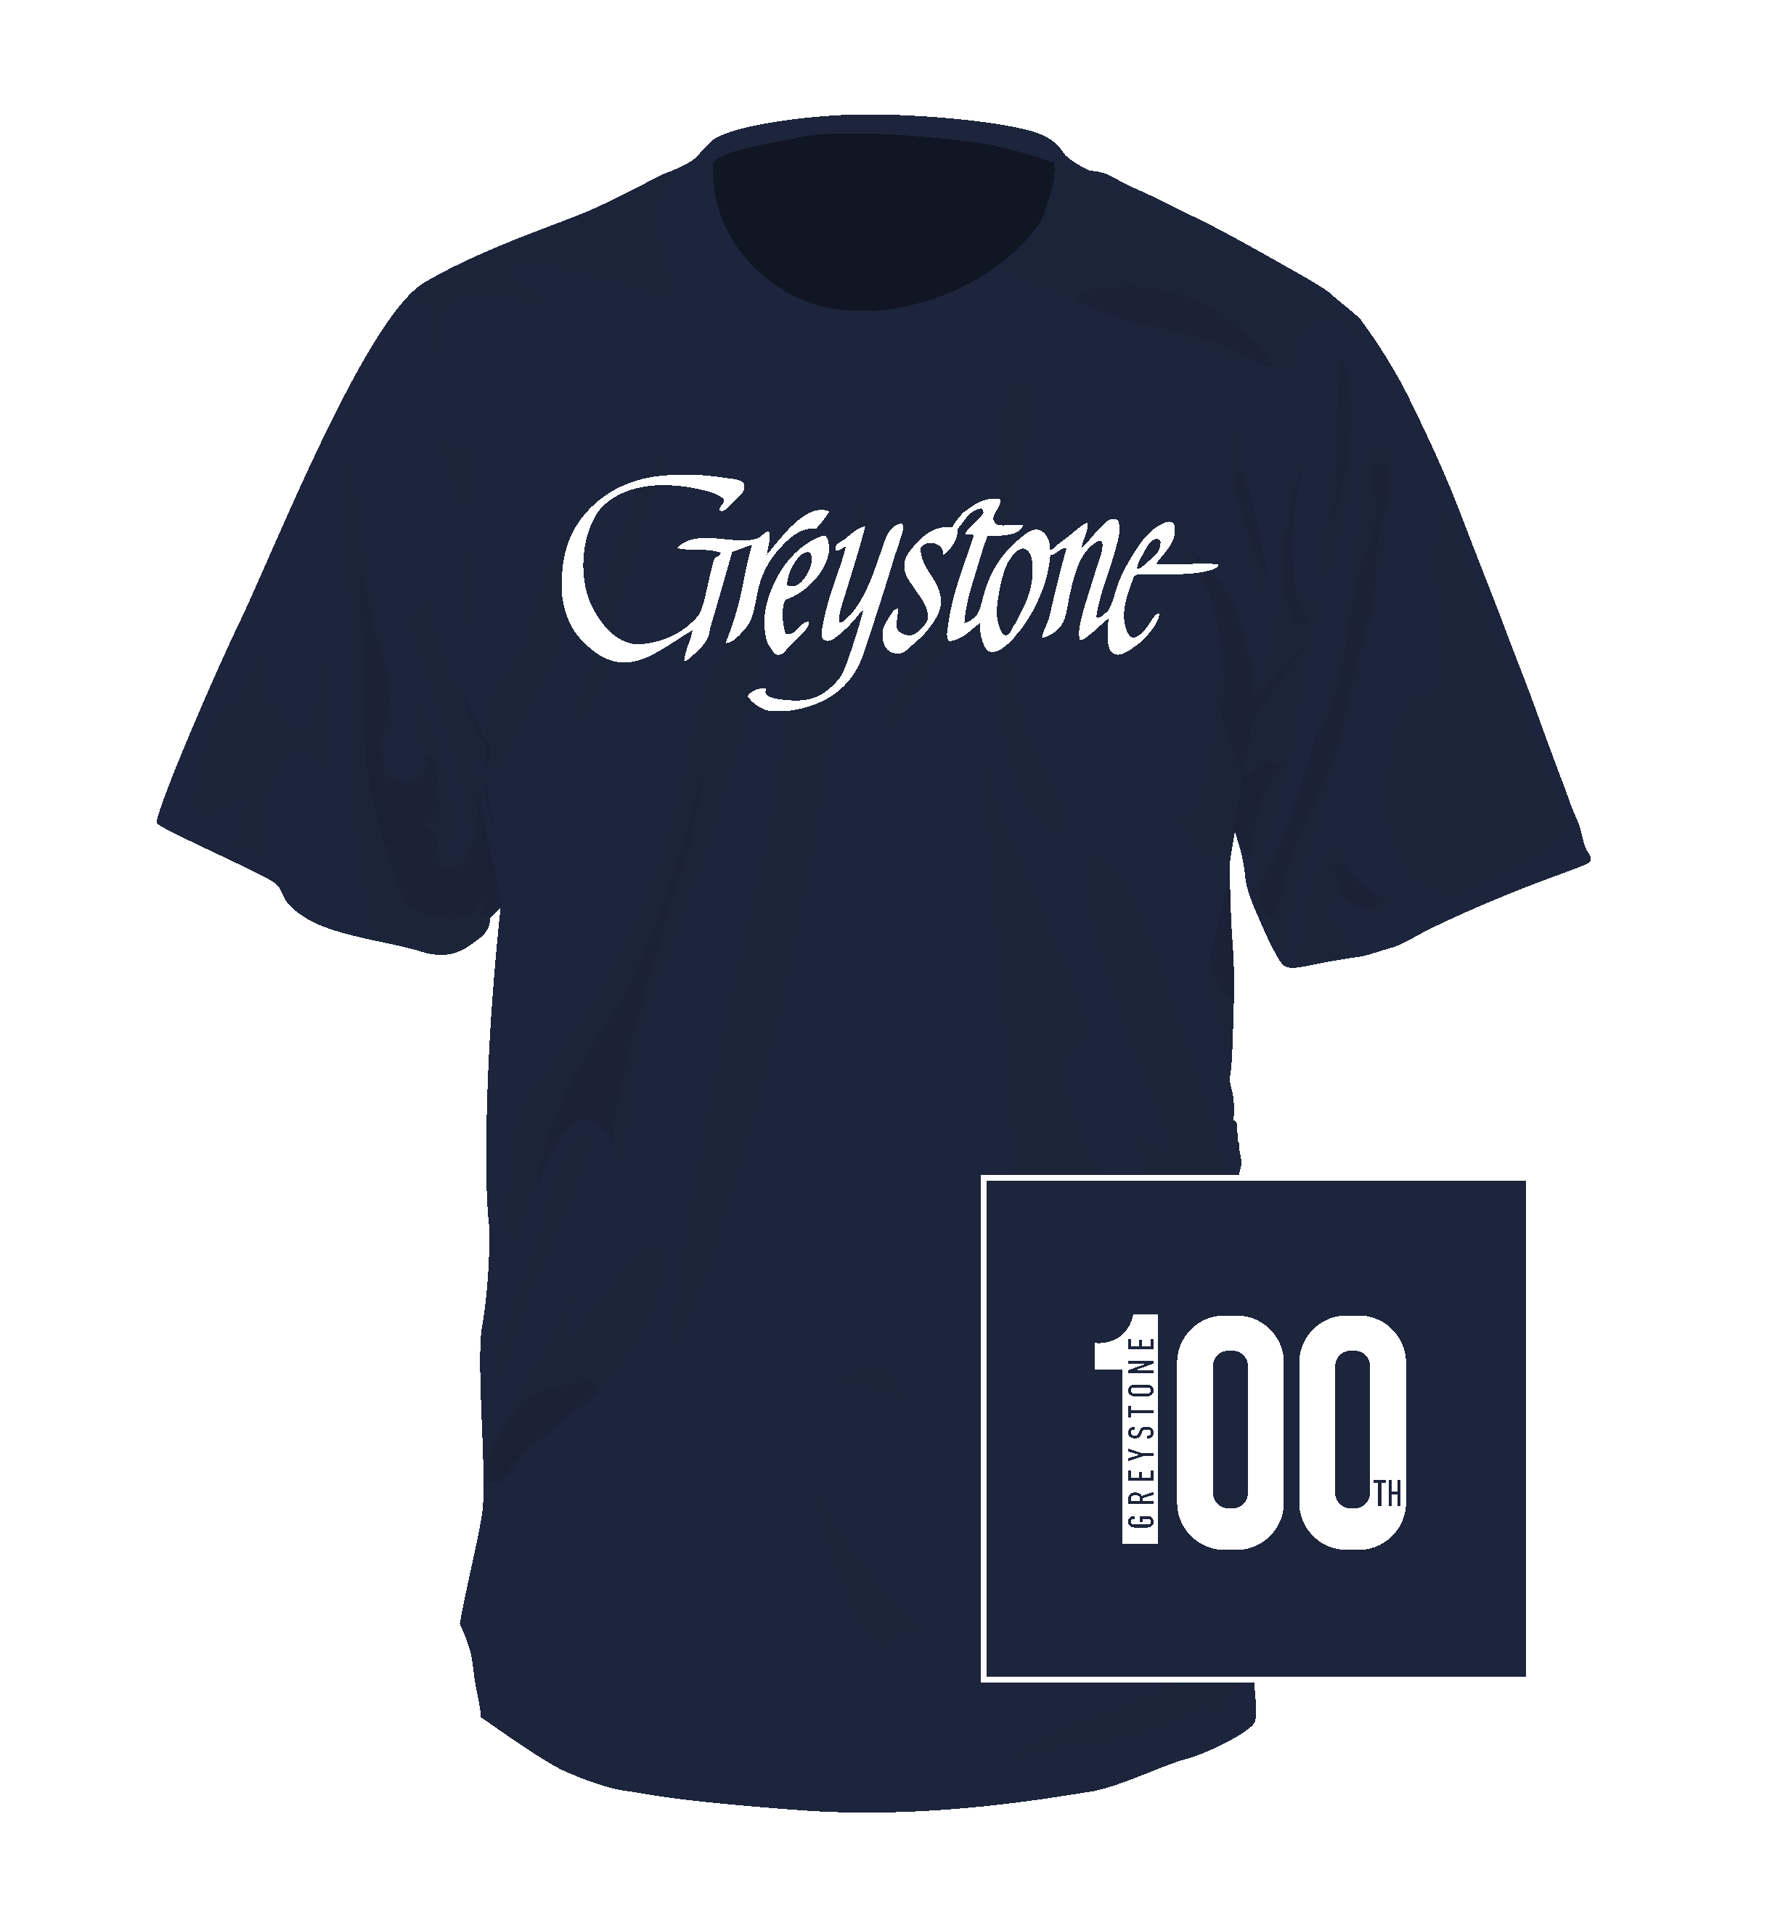 Picture of Signature Navy Short Sleeve Shirt - 100th